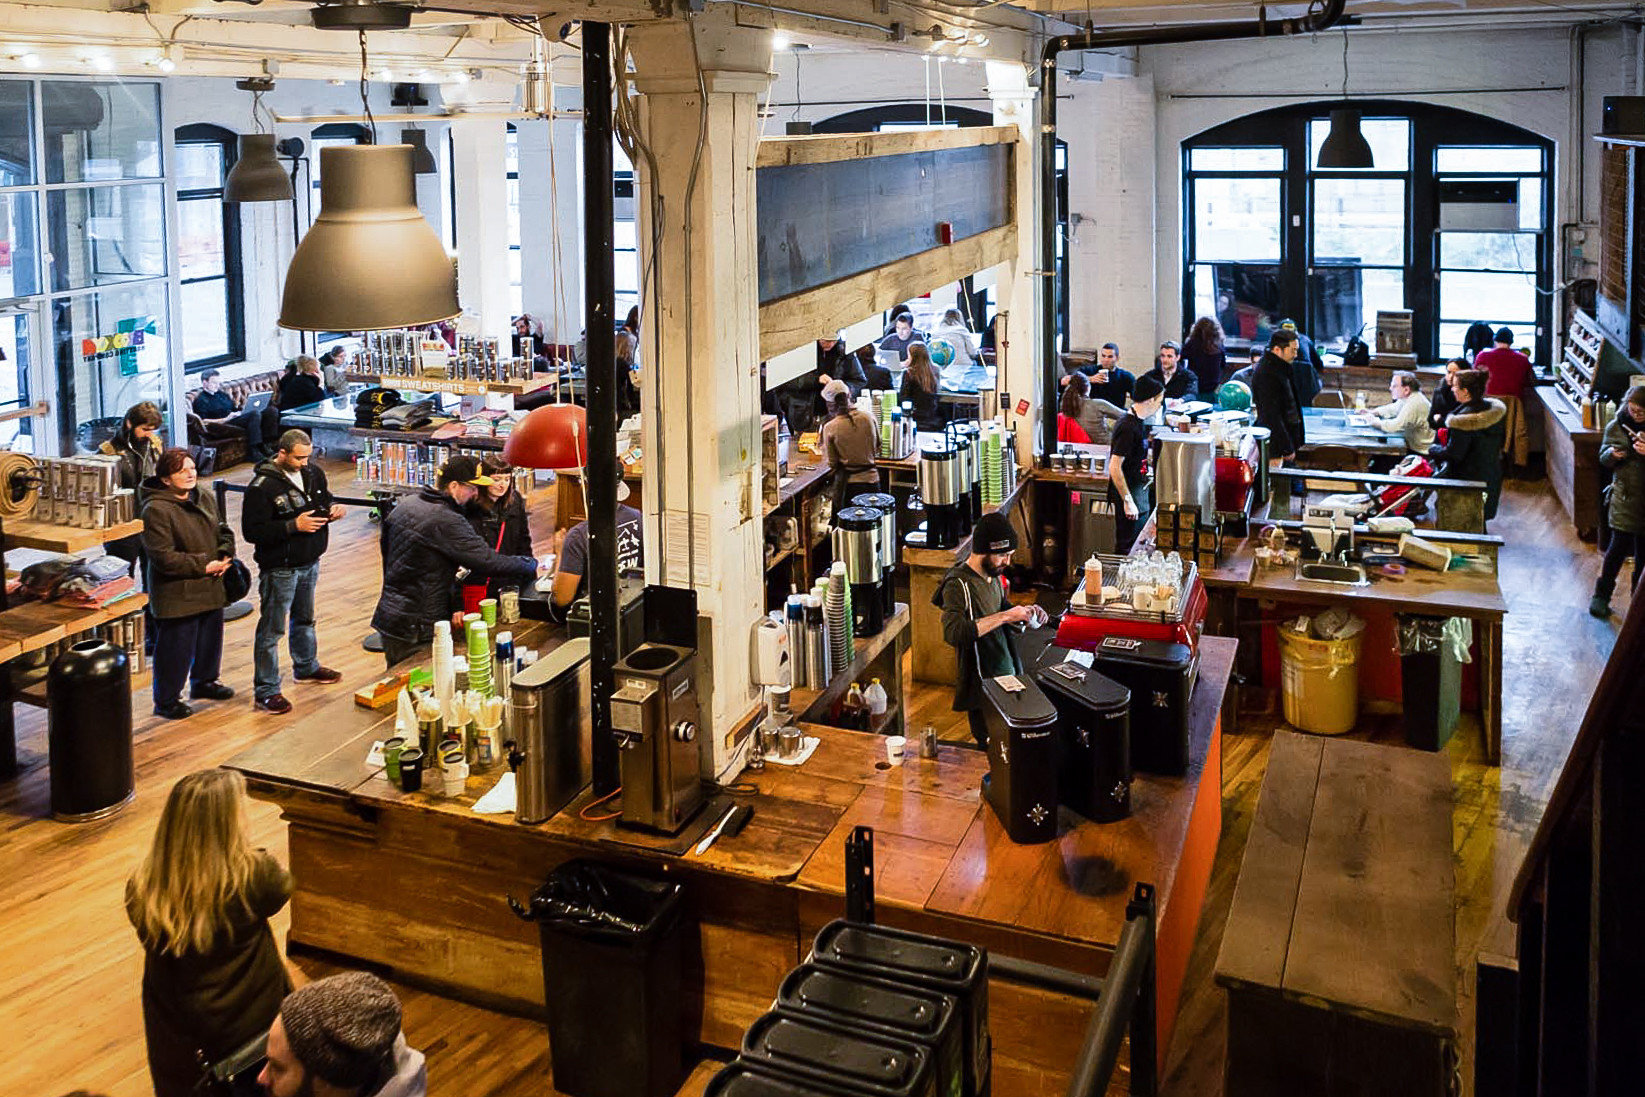 Brooklyn City Food + Drink NYC indoor cluttered